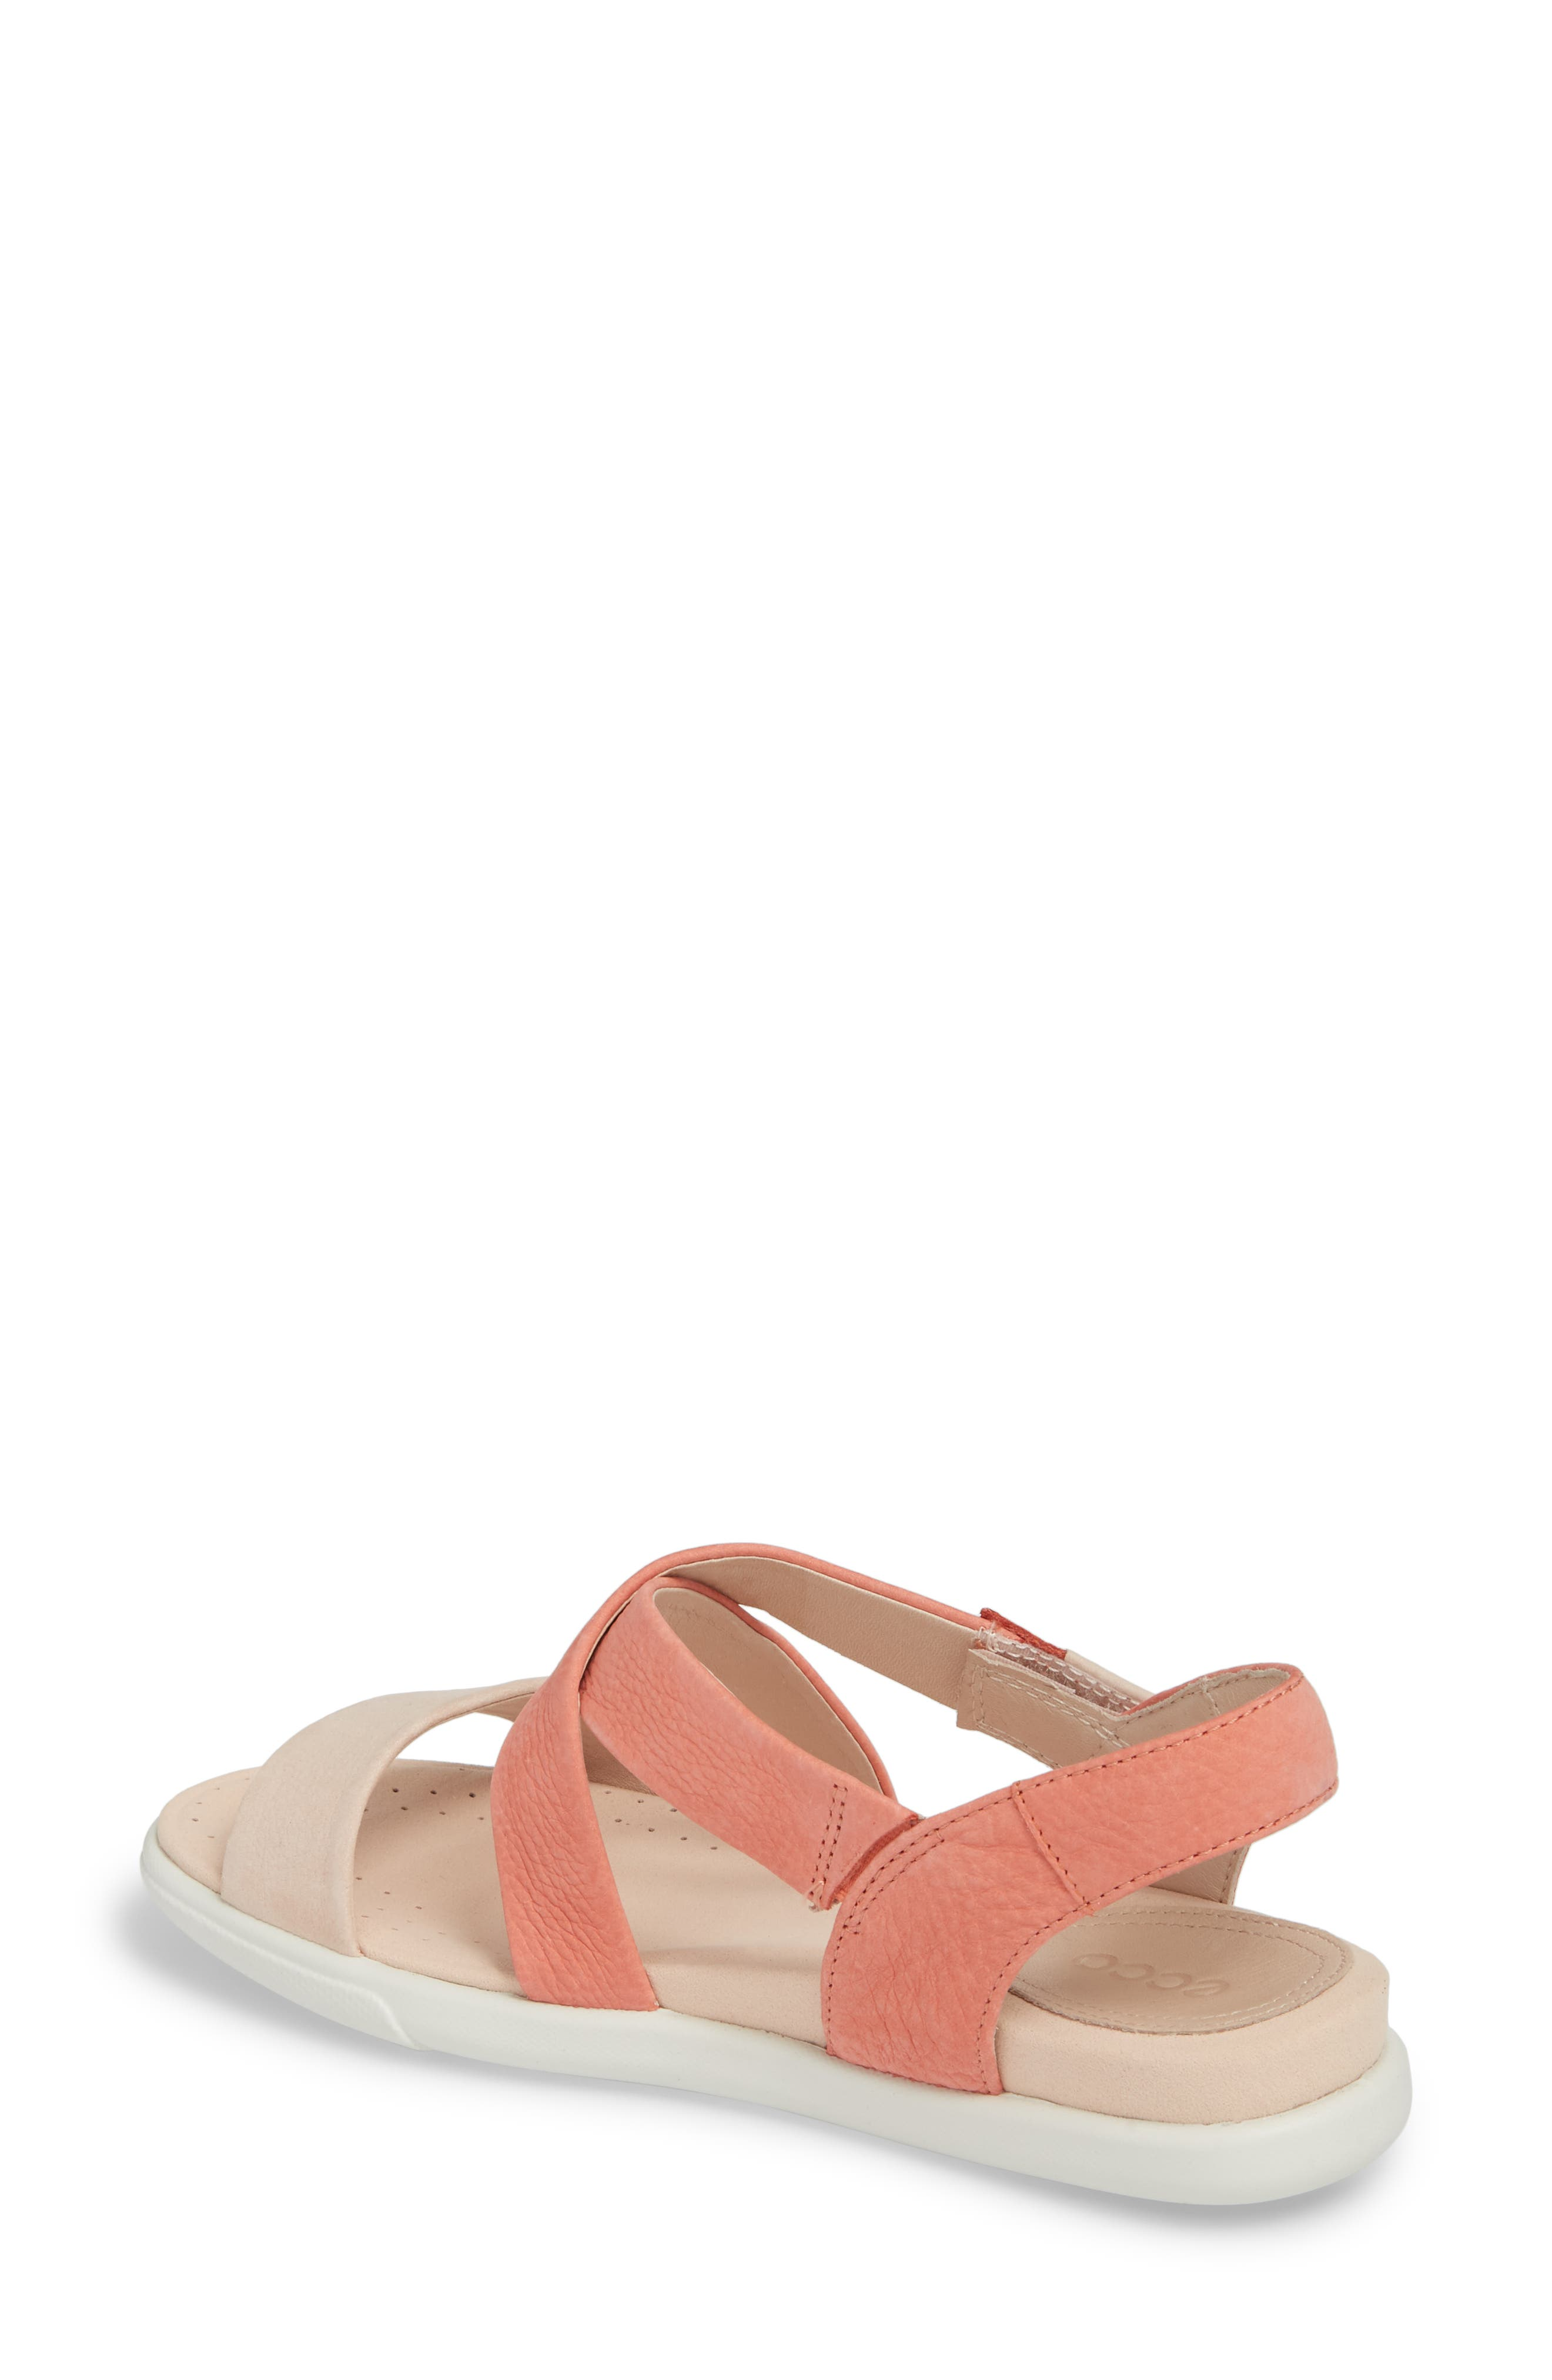 Damara Cross-Strap Sandal,                             Alternate thumbnail 11, color,